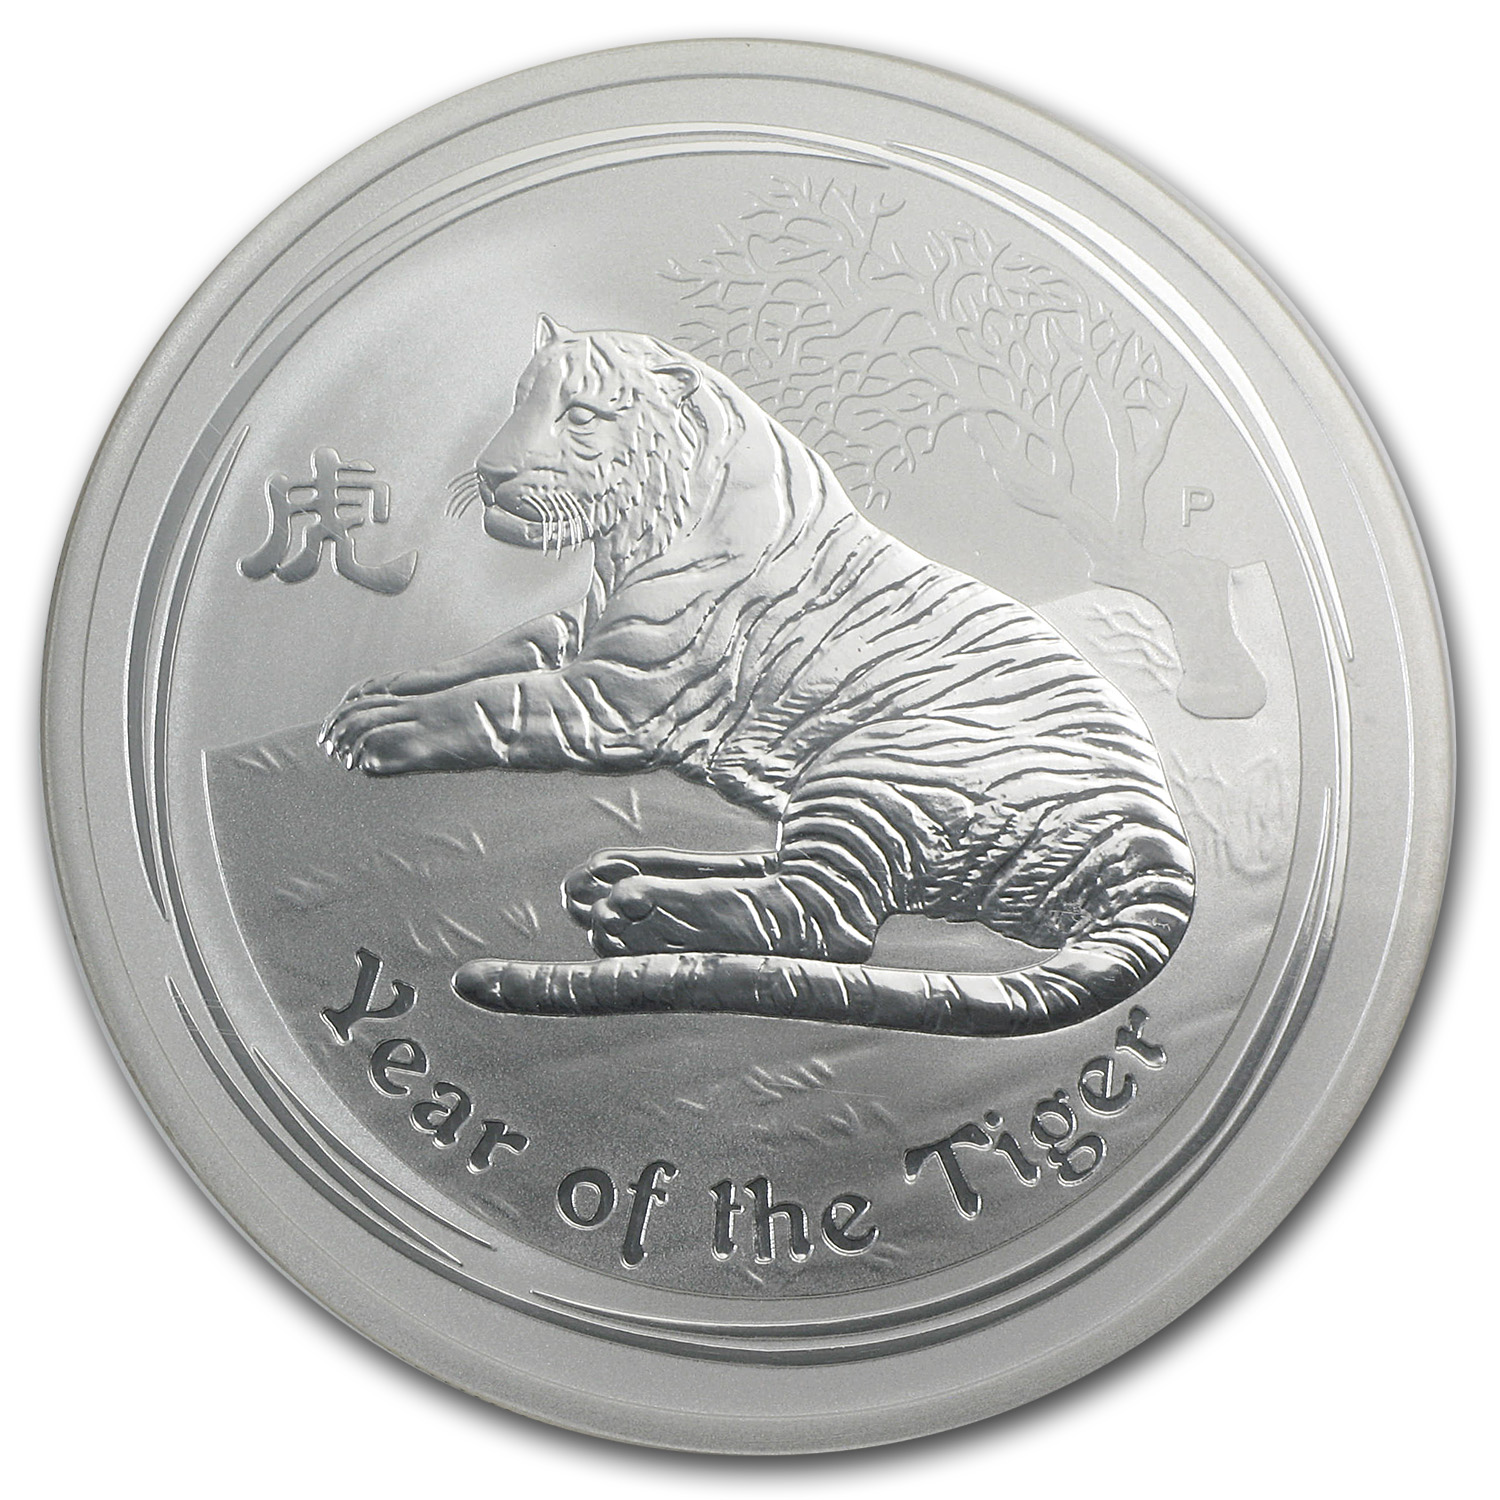 2010 2 oz Silver Year of the Tiger (Series II) MS-69 NGC